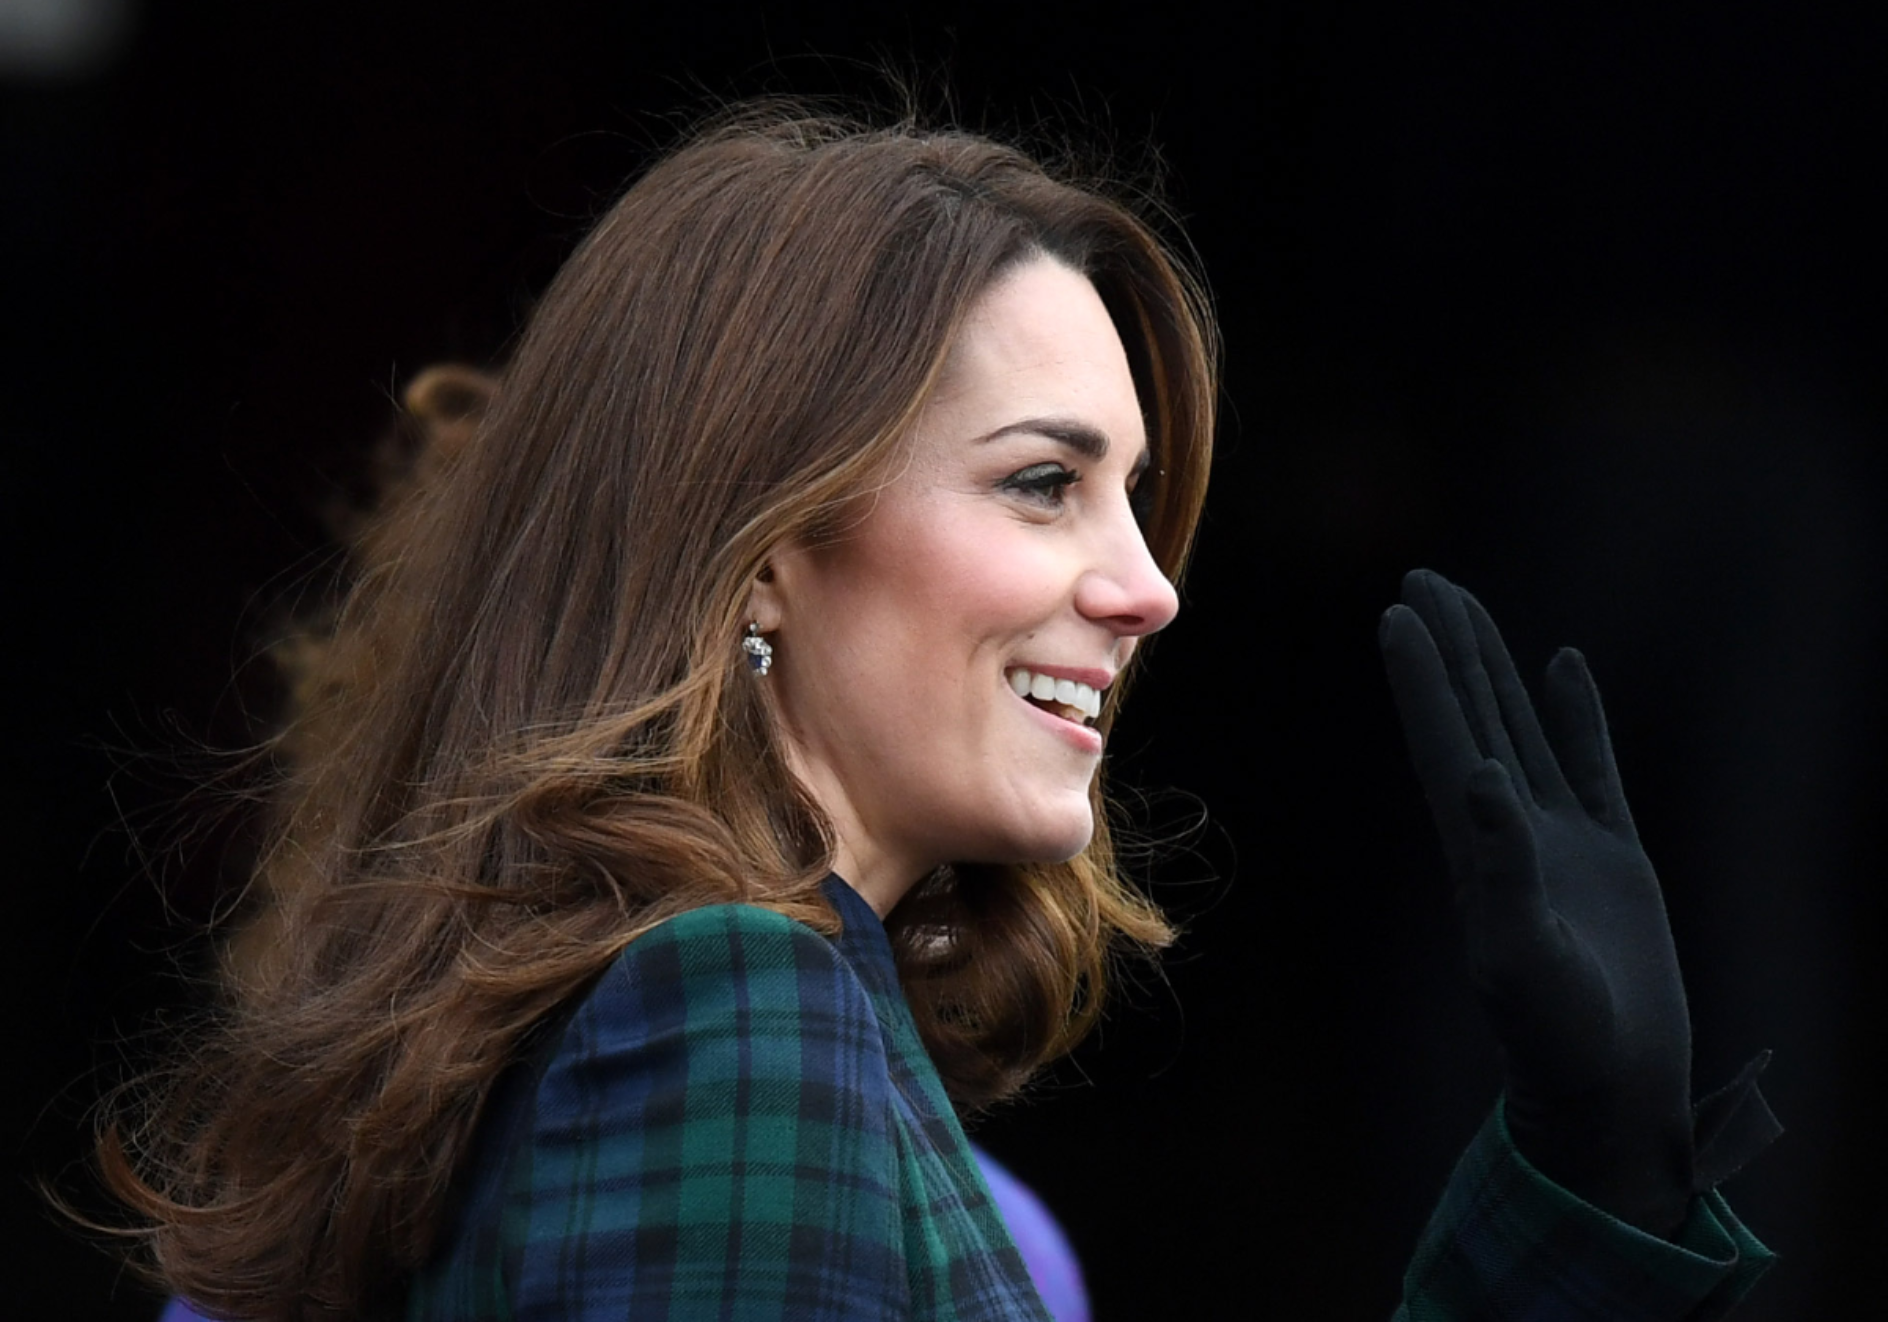 Kate Middleton's Alexander McQueen Tartan Coat Dress Re-Emerges from Her Closet After Seven Years